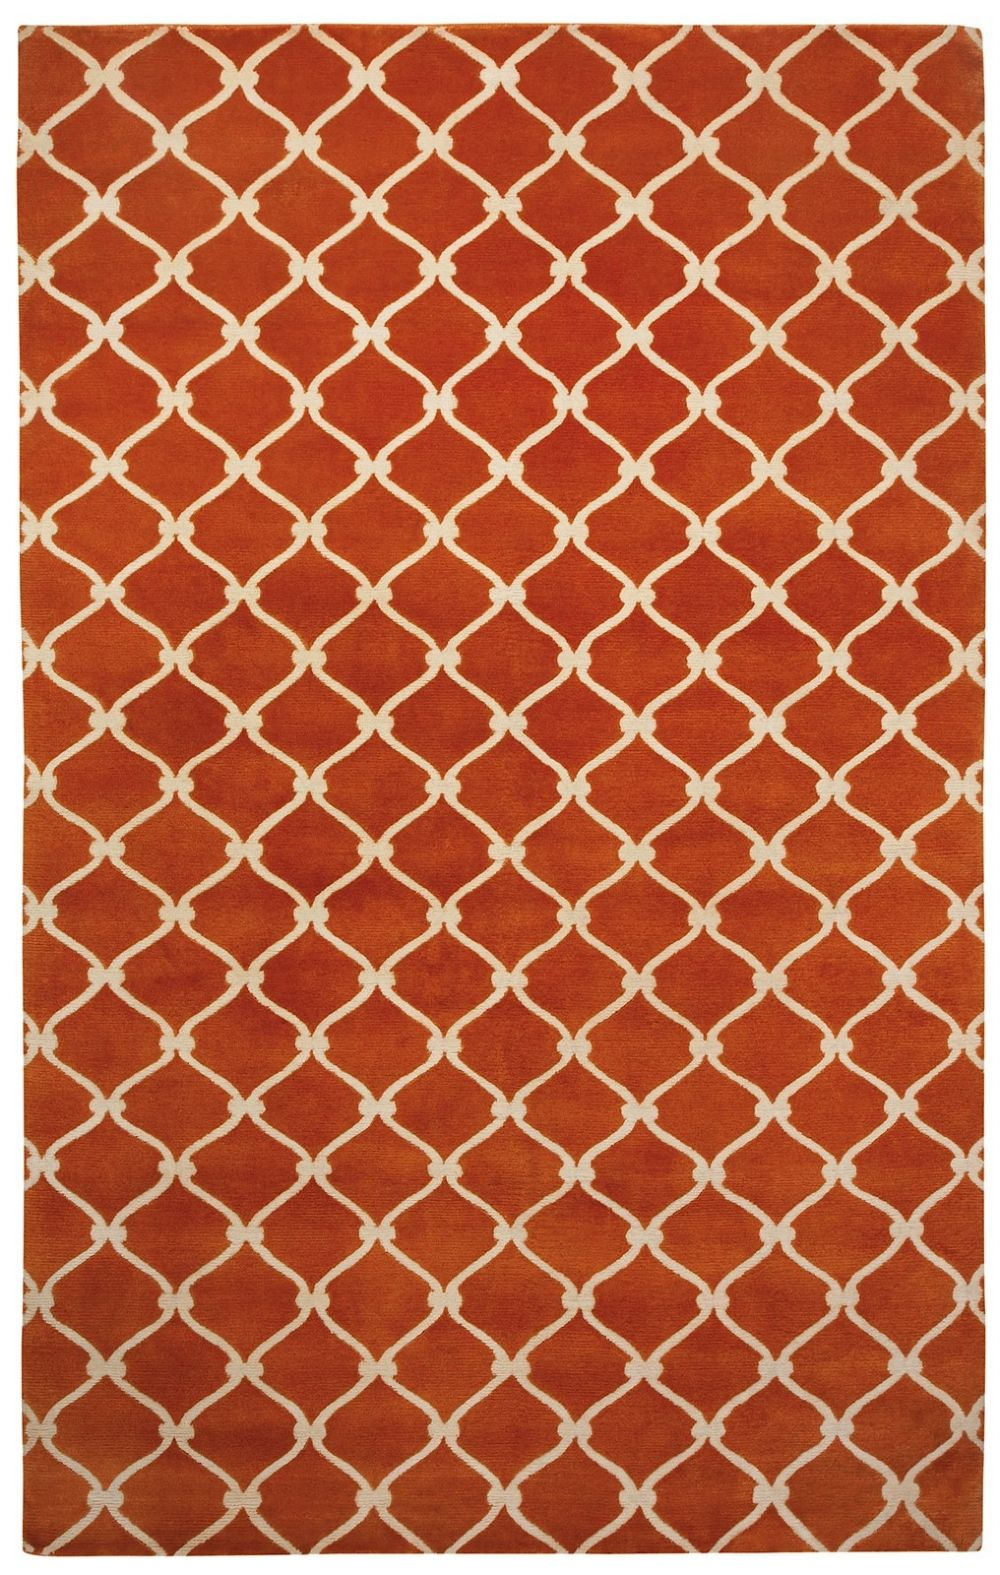 capel picket contemporary area rug collection